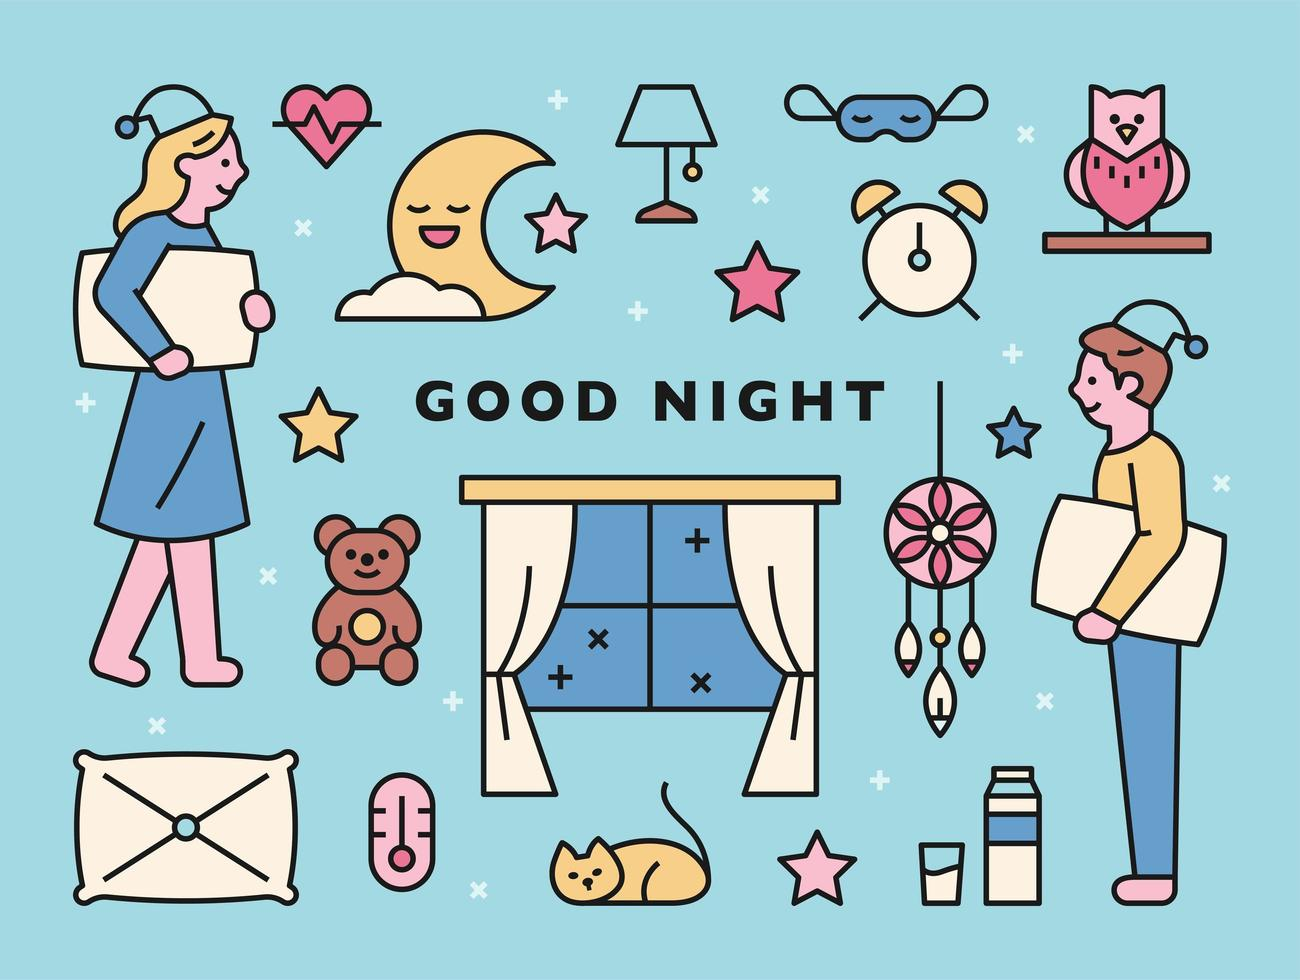 Good night character and icons vector